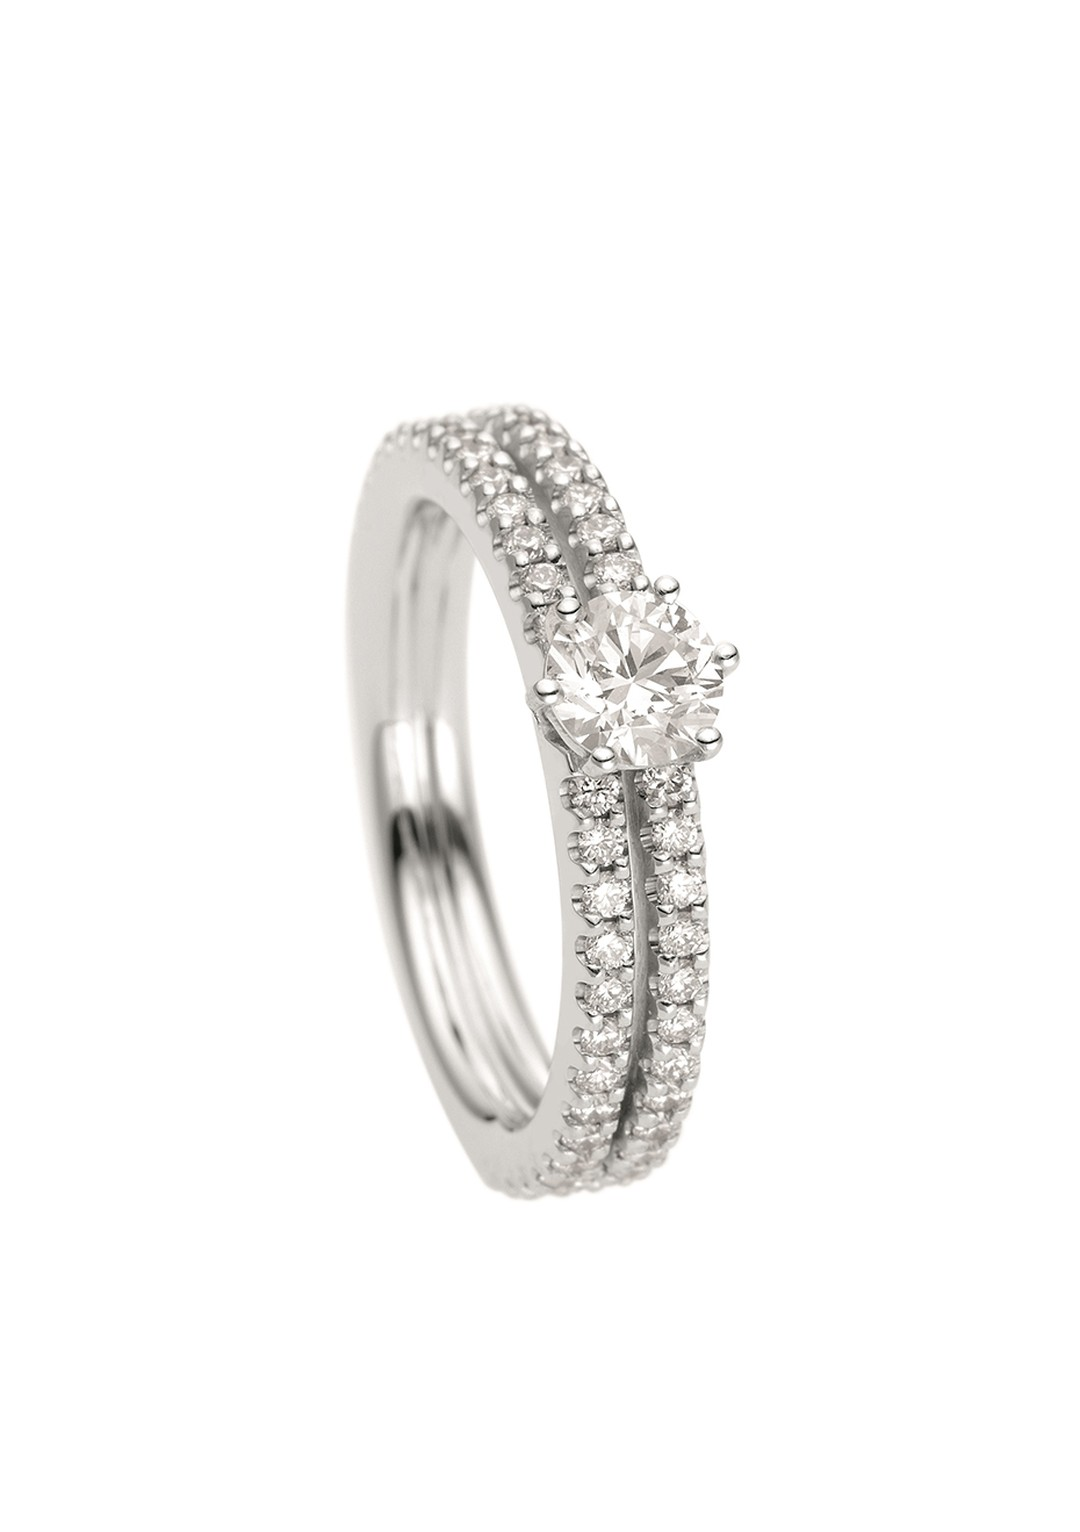 Wempe Crown Mini brilliant-cut diamond engagement ring with a double pavé band (£2,015).